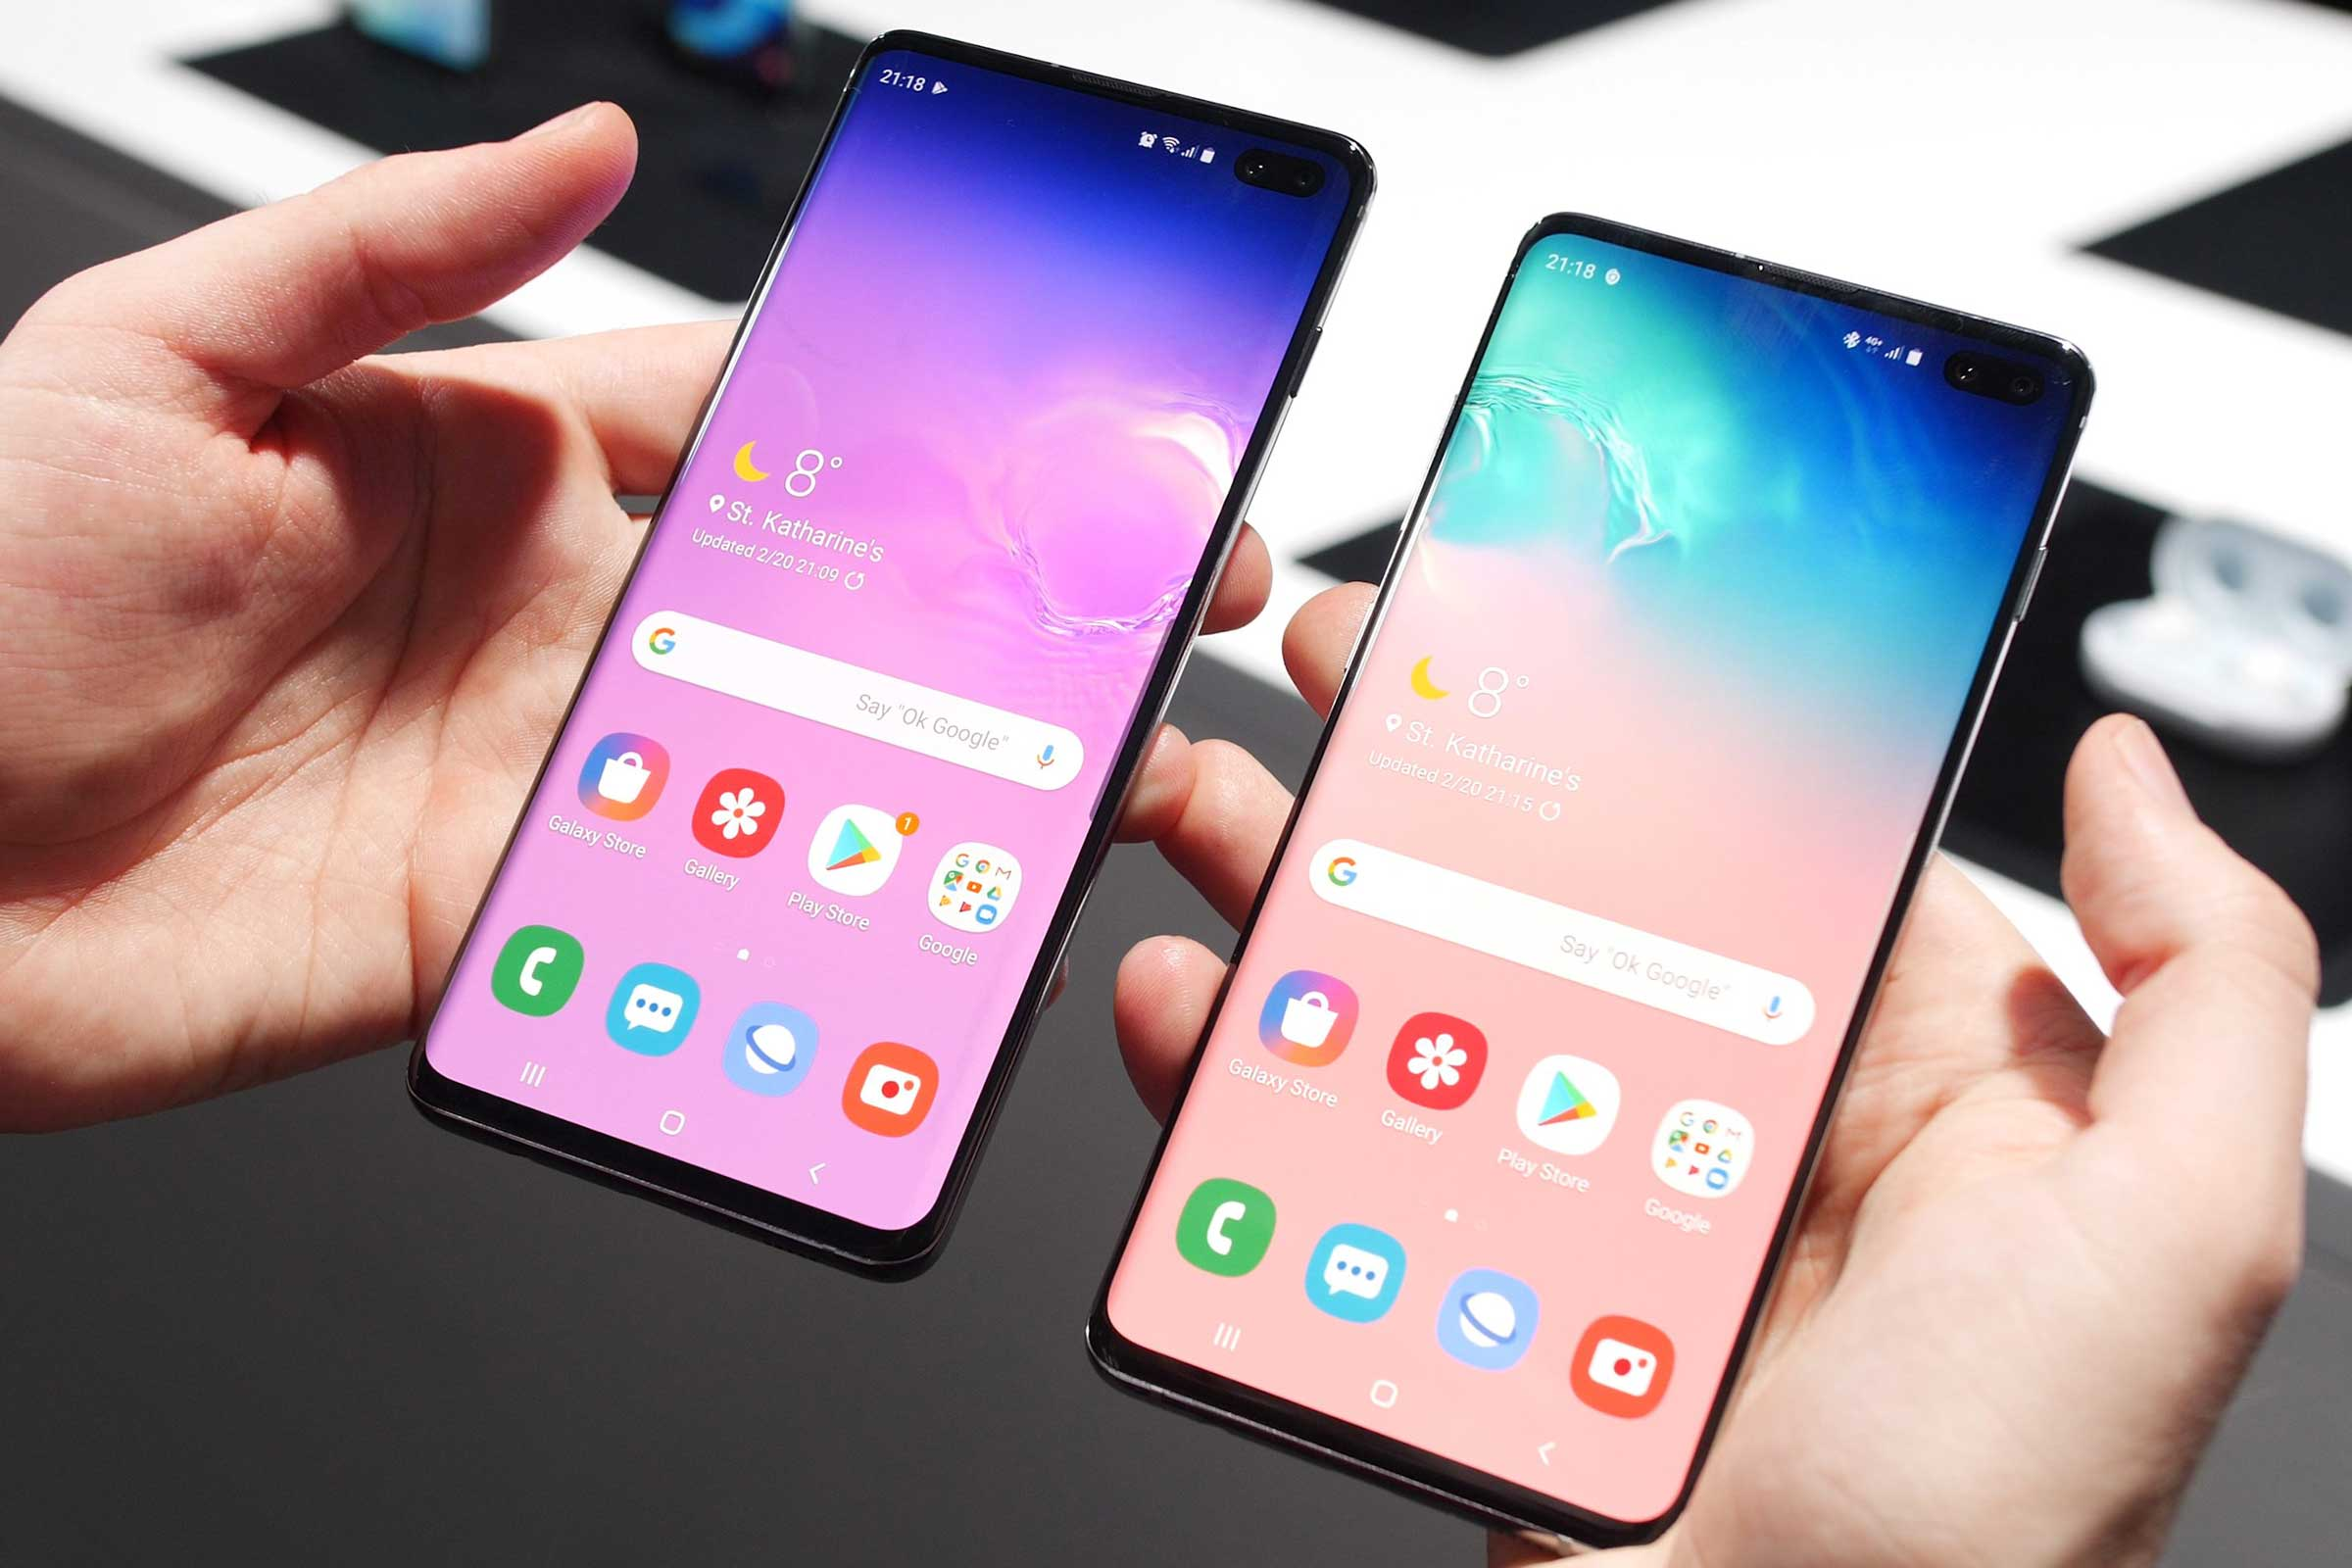 Samsung Galaxy S10 & S10+ for Business